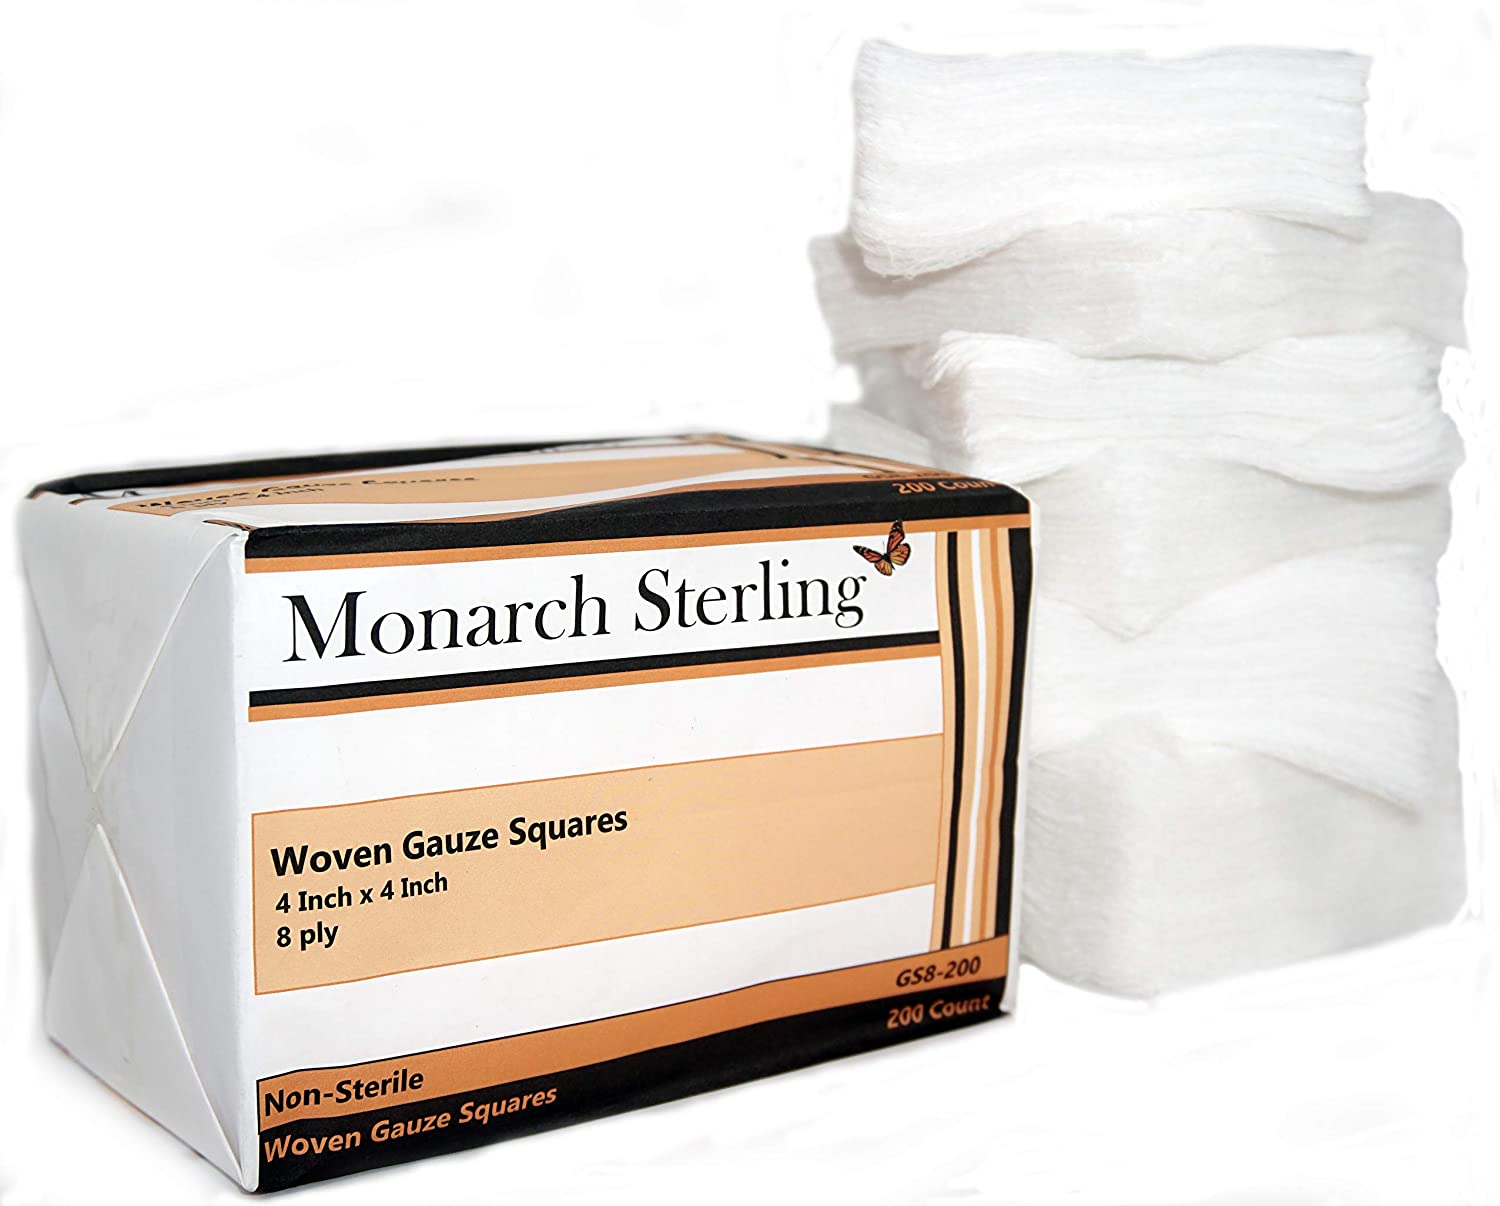 Monarch Factory outlet Sterling 100% Cotton Non-Sterile Woven Max 80% OFF inch 4 Gauz 8 ply